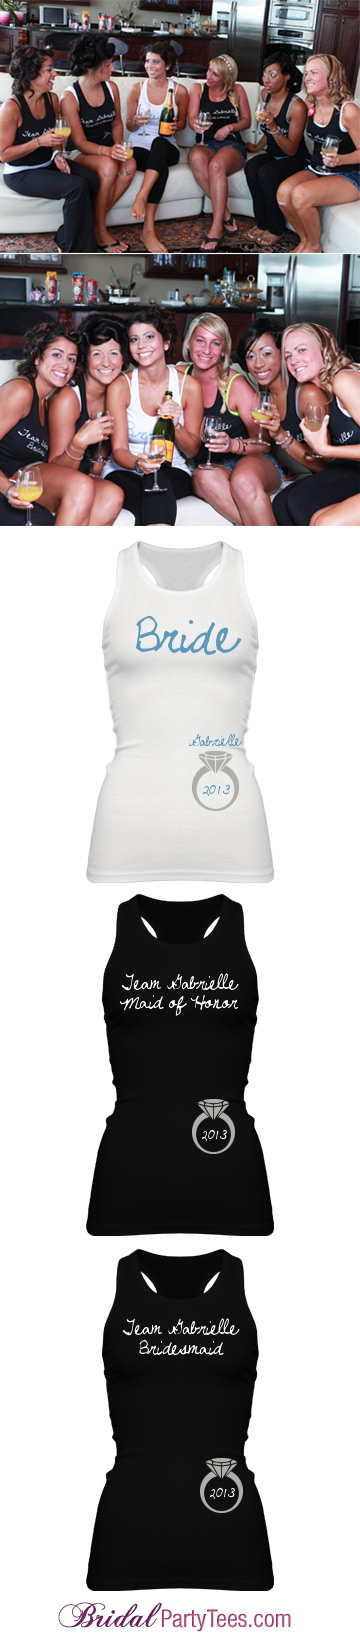 Bachelorette Party Ring and Date Tanks